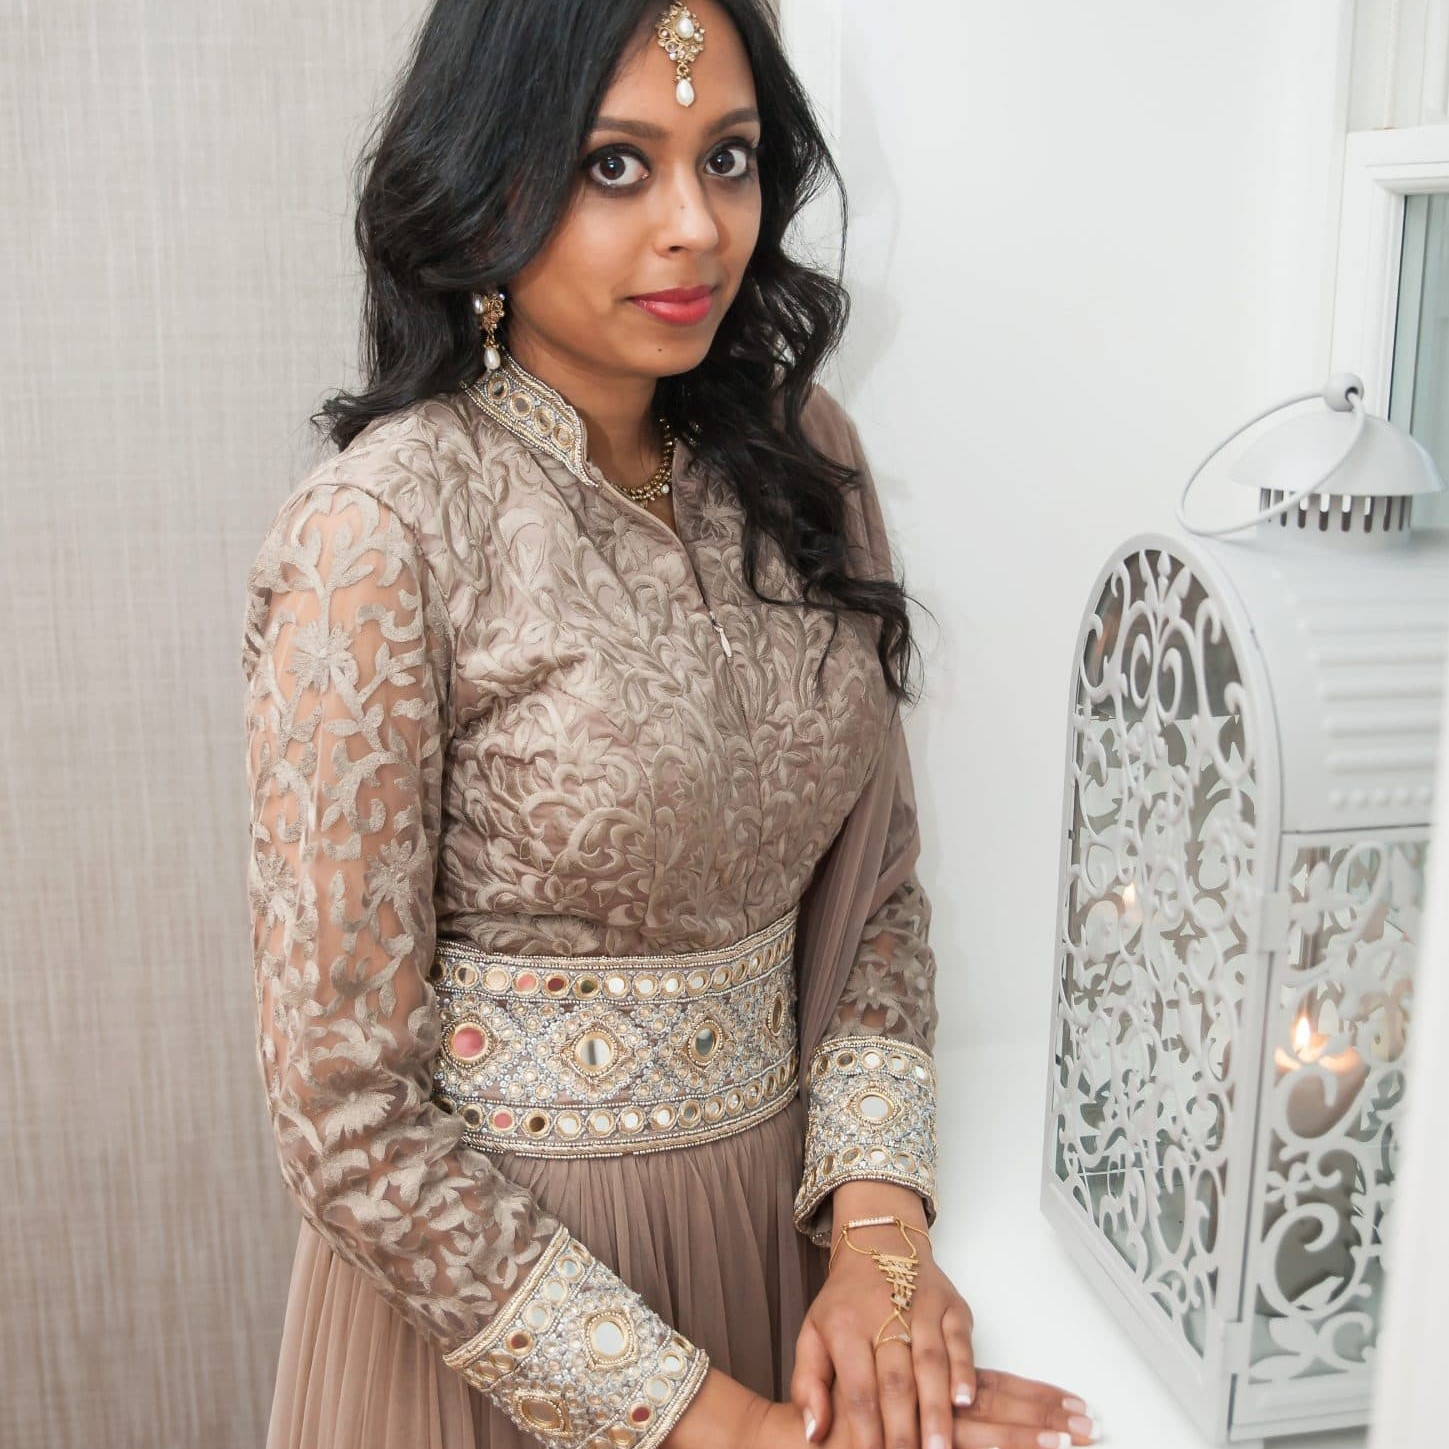 Indian bride at her engagement wearing a long reception dress